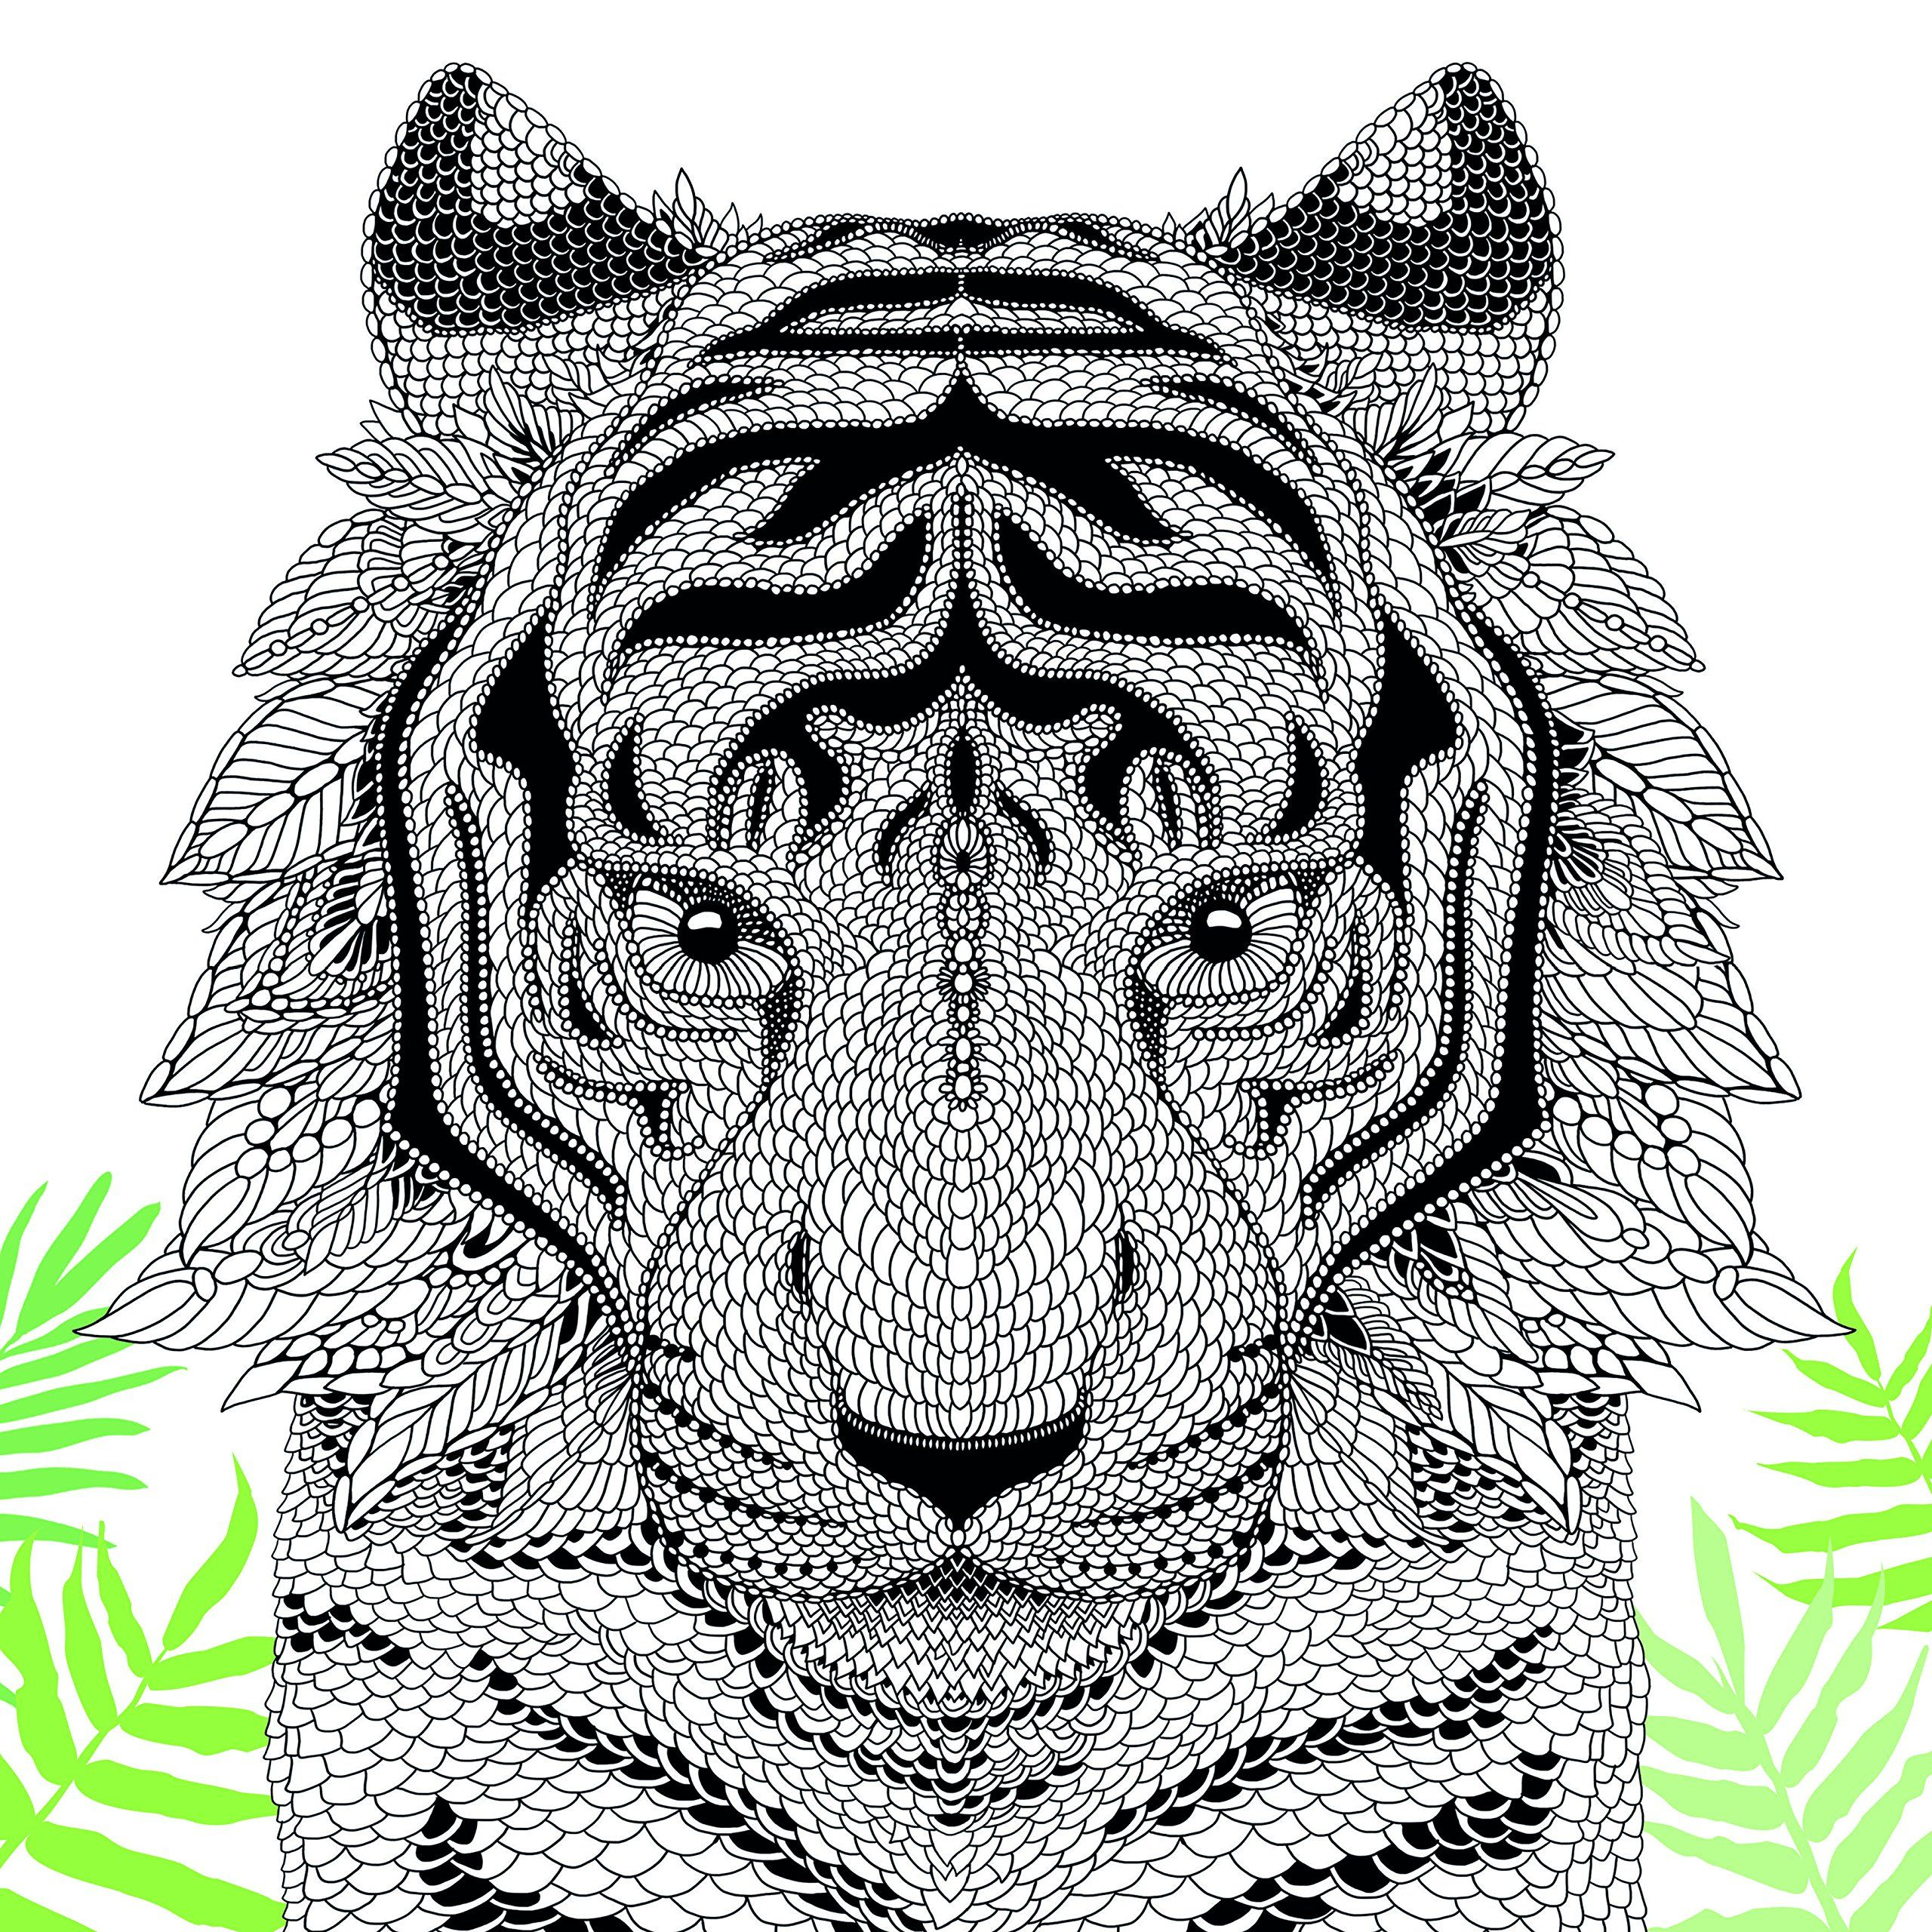 Buy the menagerie animal portraits to color book online at low